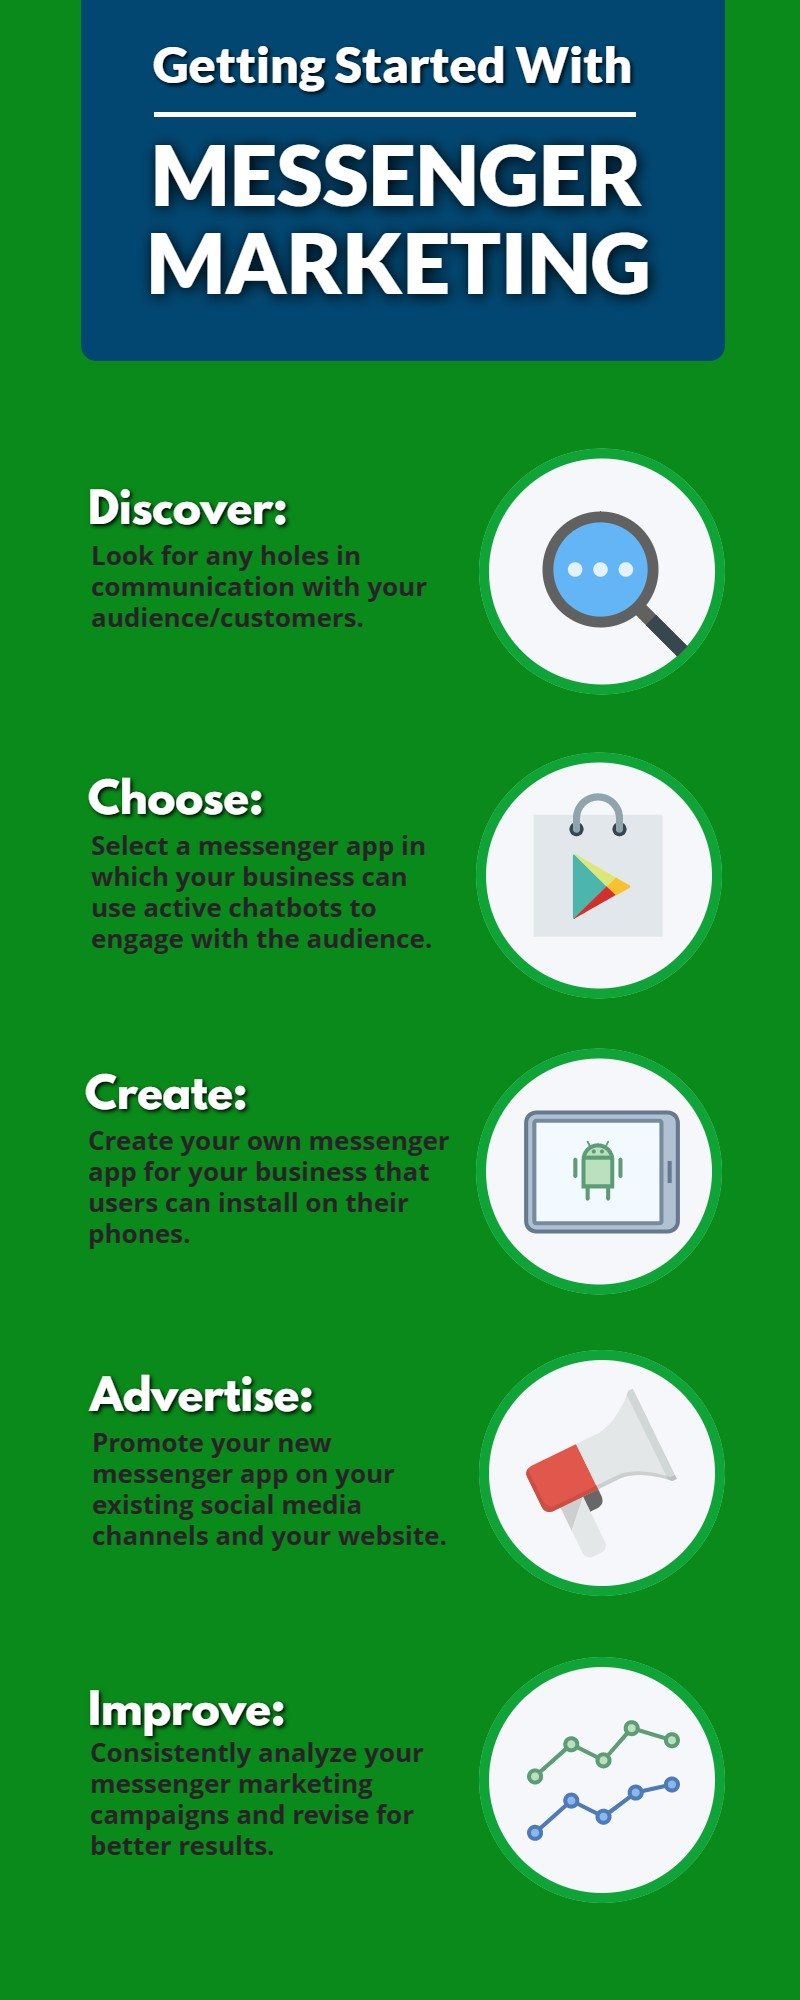 Getting started with Messenger Marketing | Infographic | WSI Ottawa